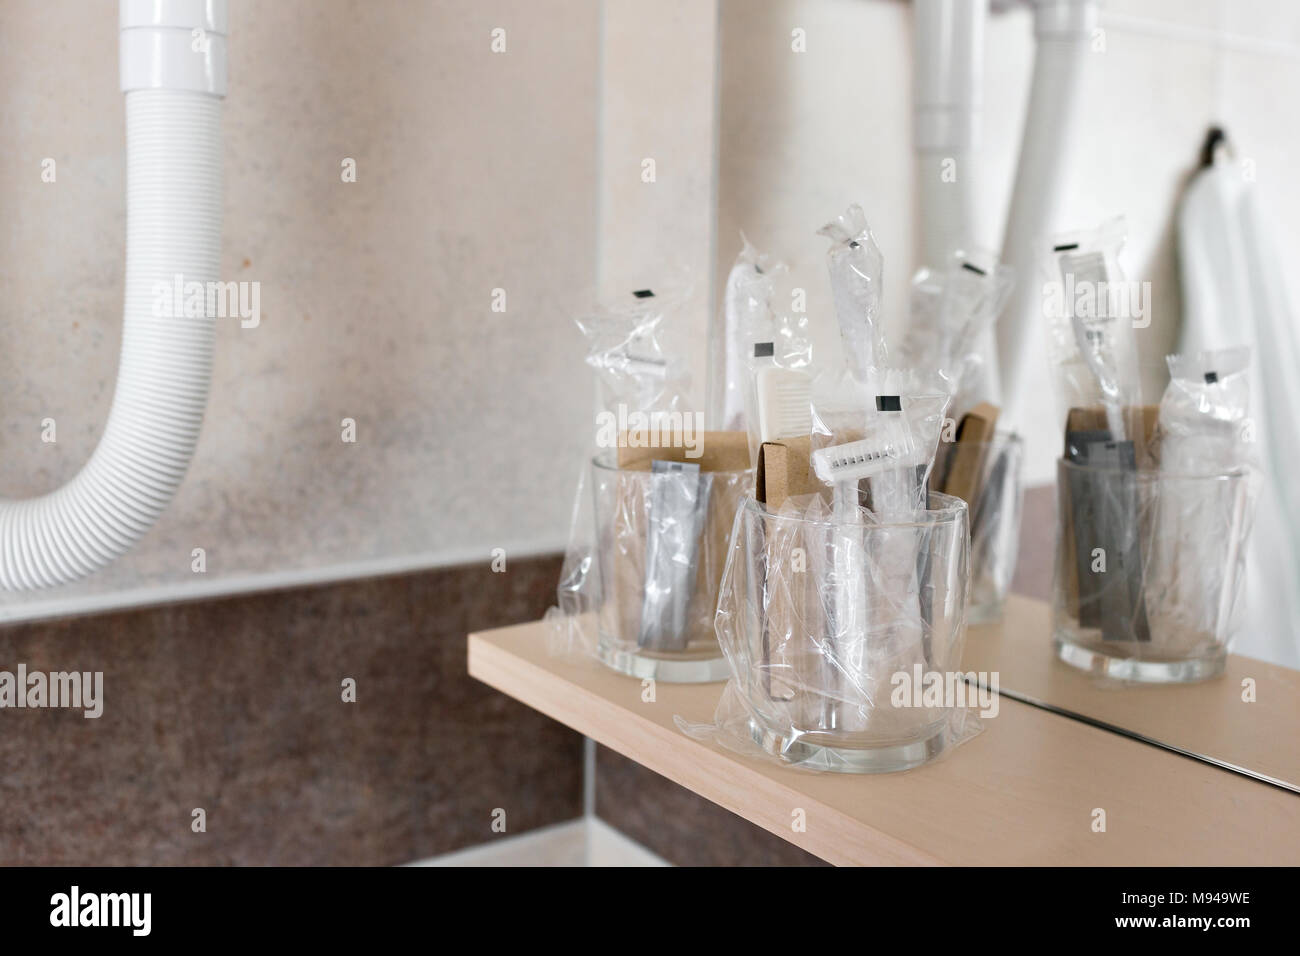 Close up view on the bottles with cosmetics and hygienic kit ain the hotel bathroom - Stock Image